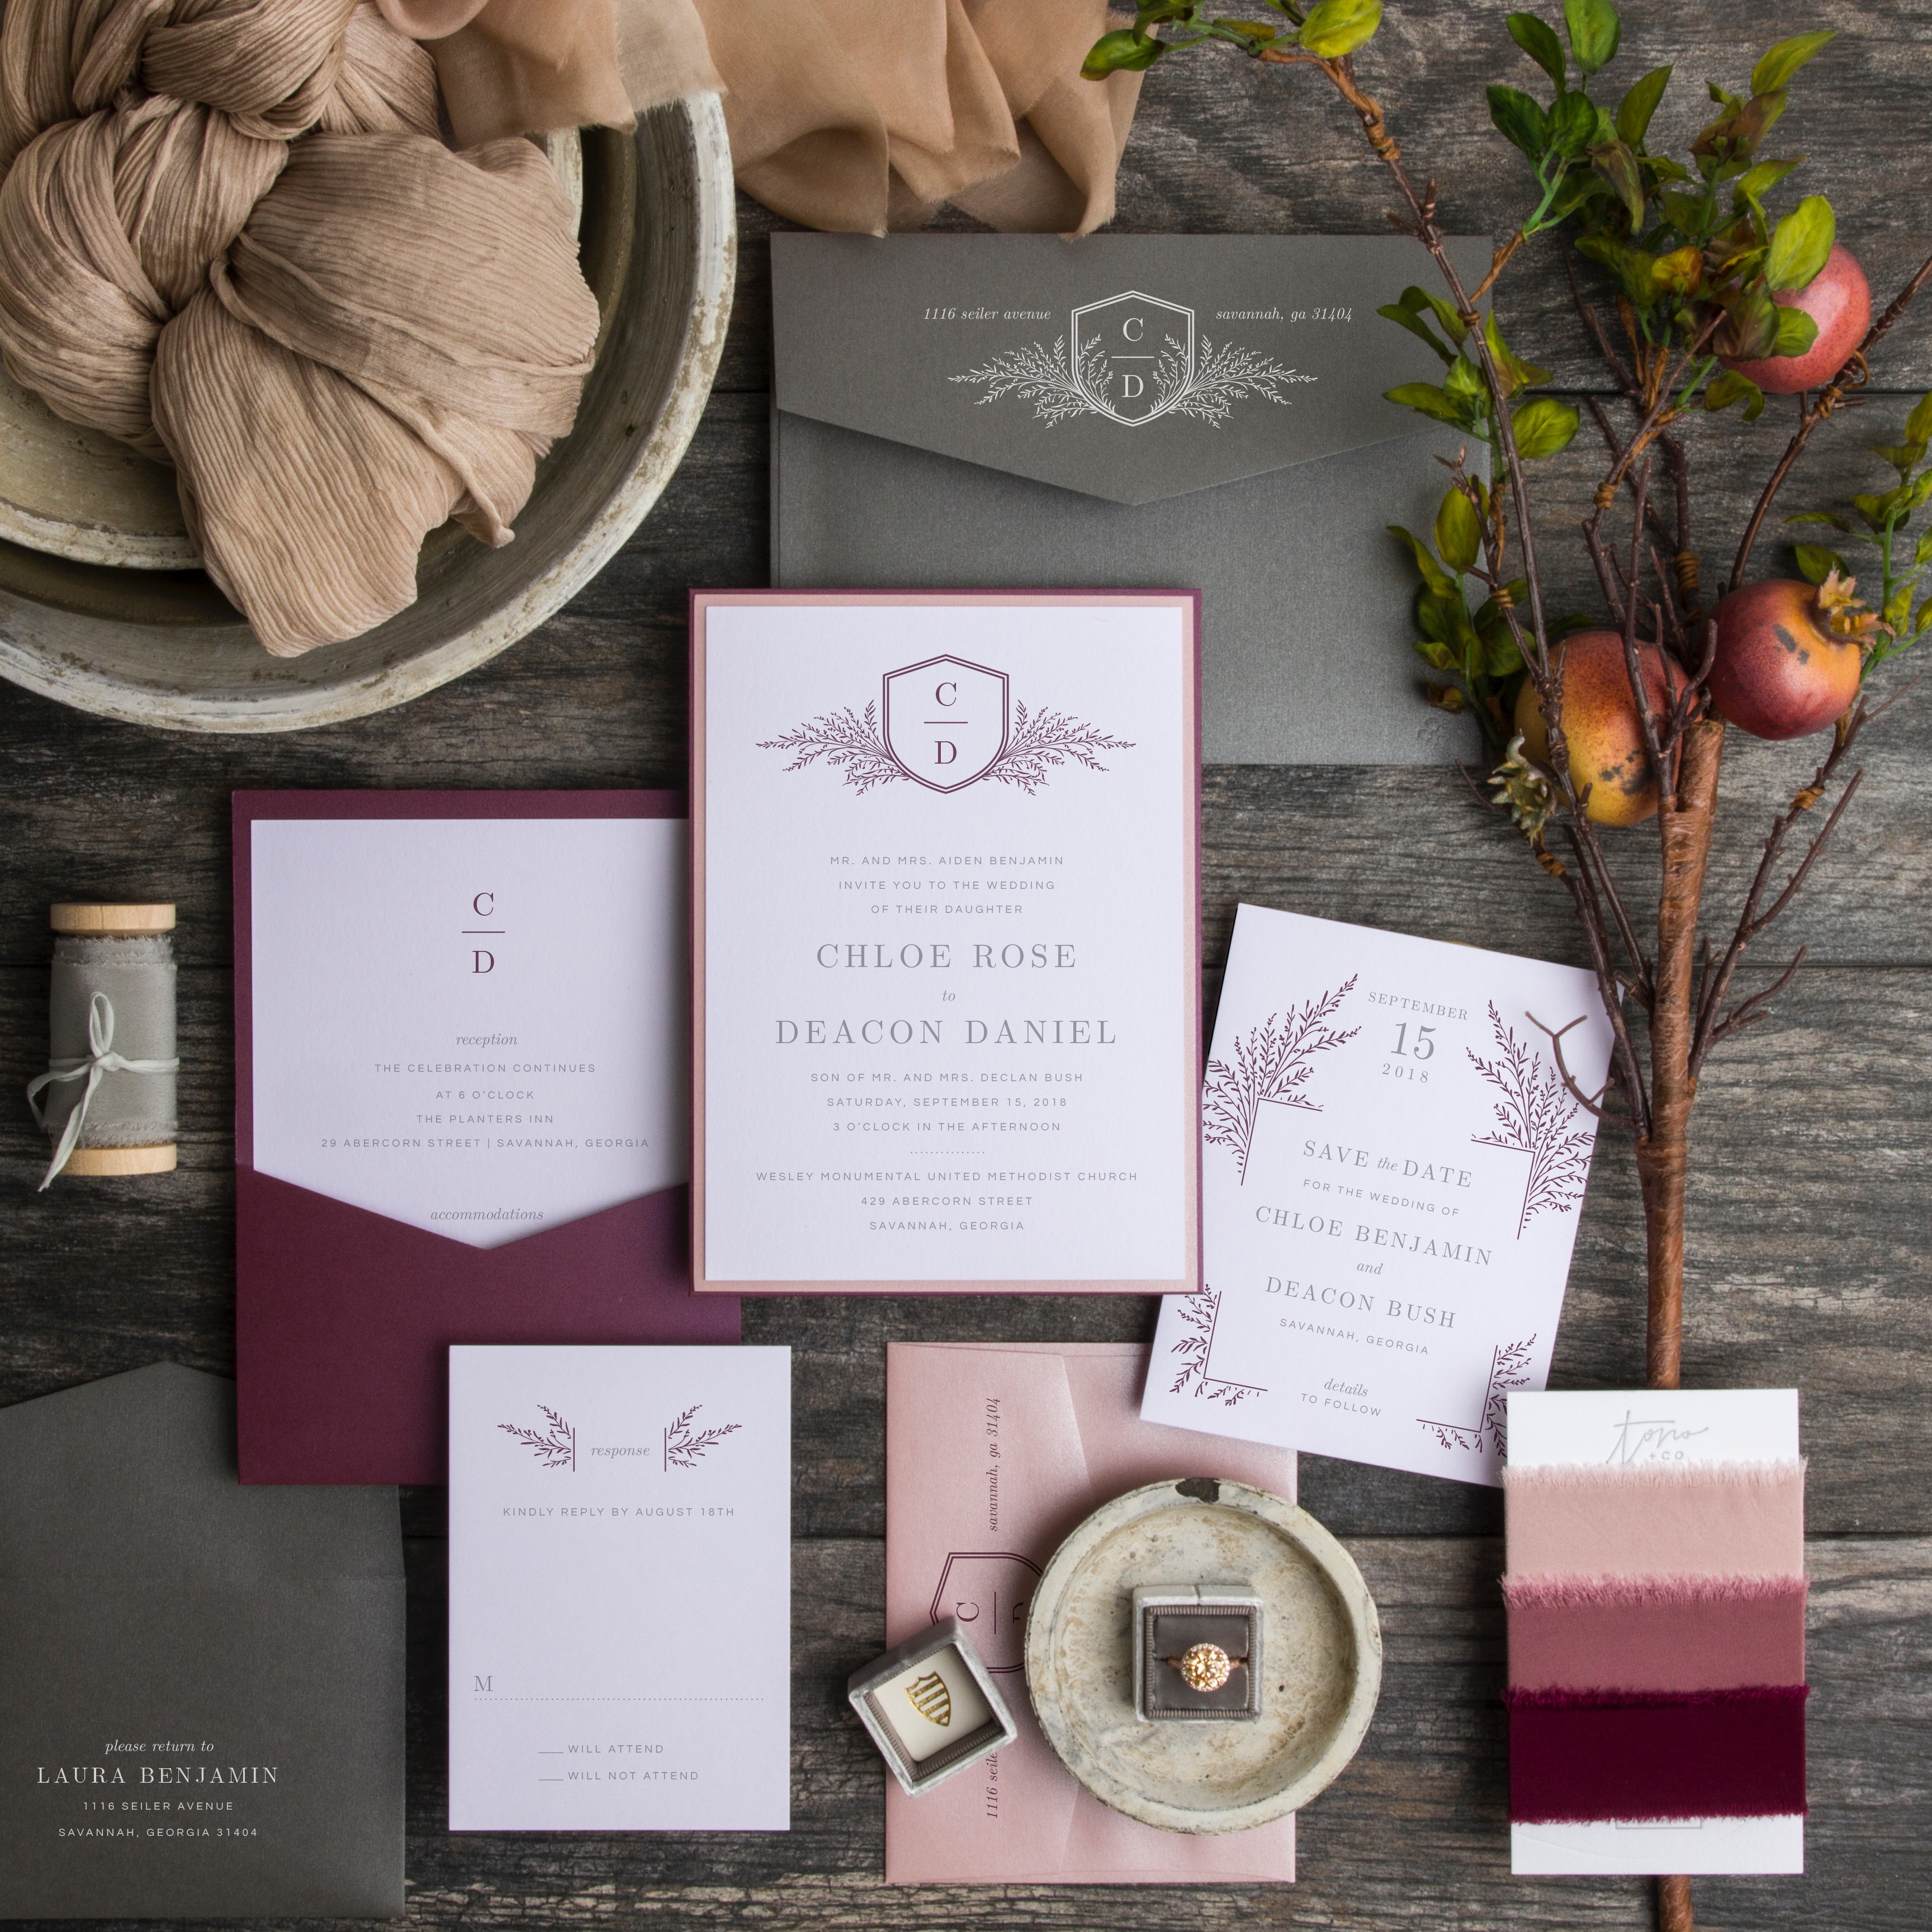 Charmed Life wedding invitation is classic and contemporary.  A modern monogram is neatly displayed in a family crest and embellished with ferns.